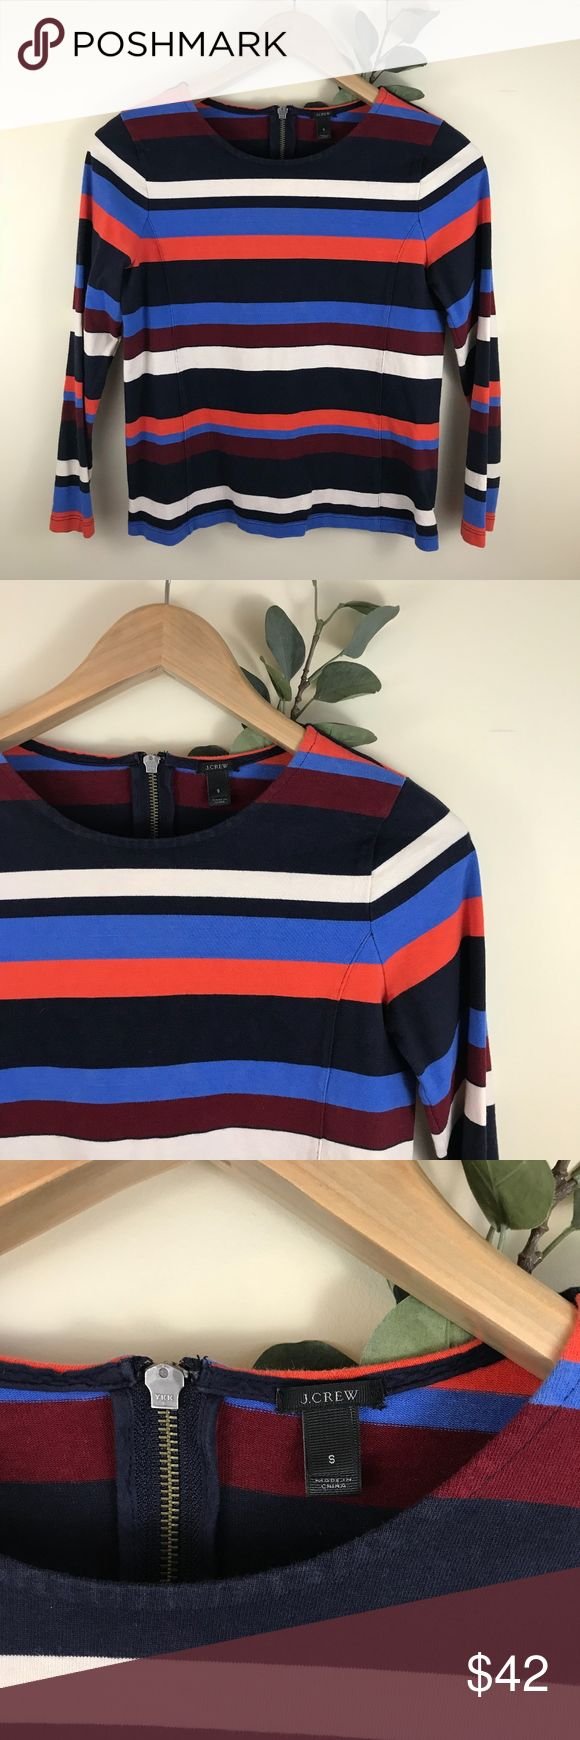 """J. Crew Multicolor Striped Zip Back Neutral Blouse J. Crew Multicolor Striped Zip Back Neutral Blouse. Size small. EUC, unstructured, boxy fit. approx 32"""" chest, 21"""" from shoulder to hem. 100% cotton. J. Crew Tops Blouses"""